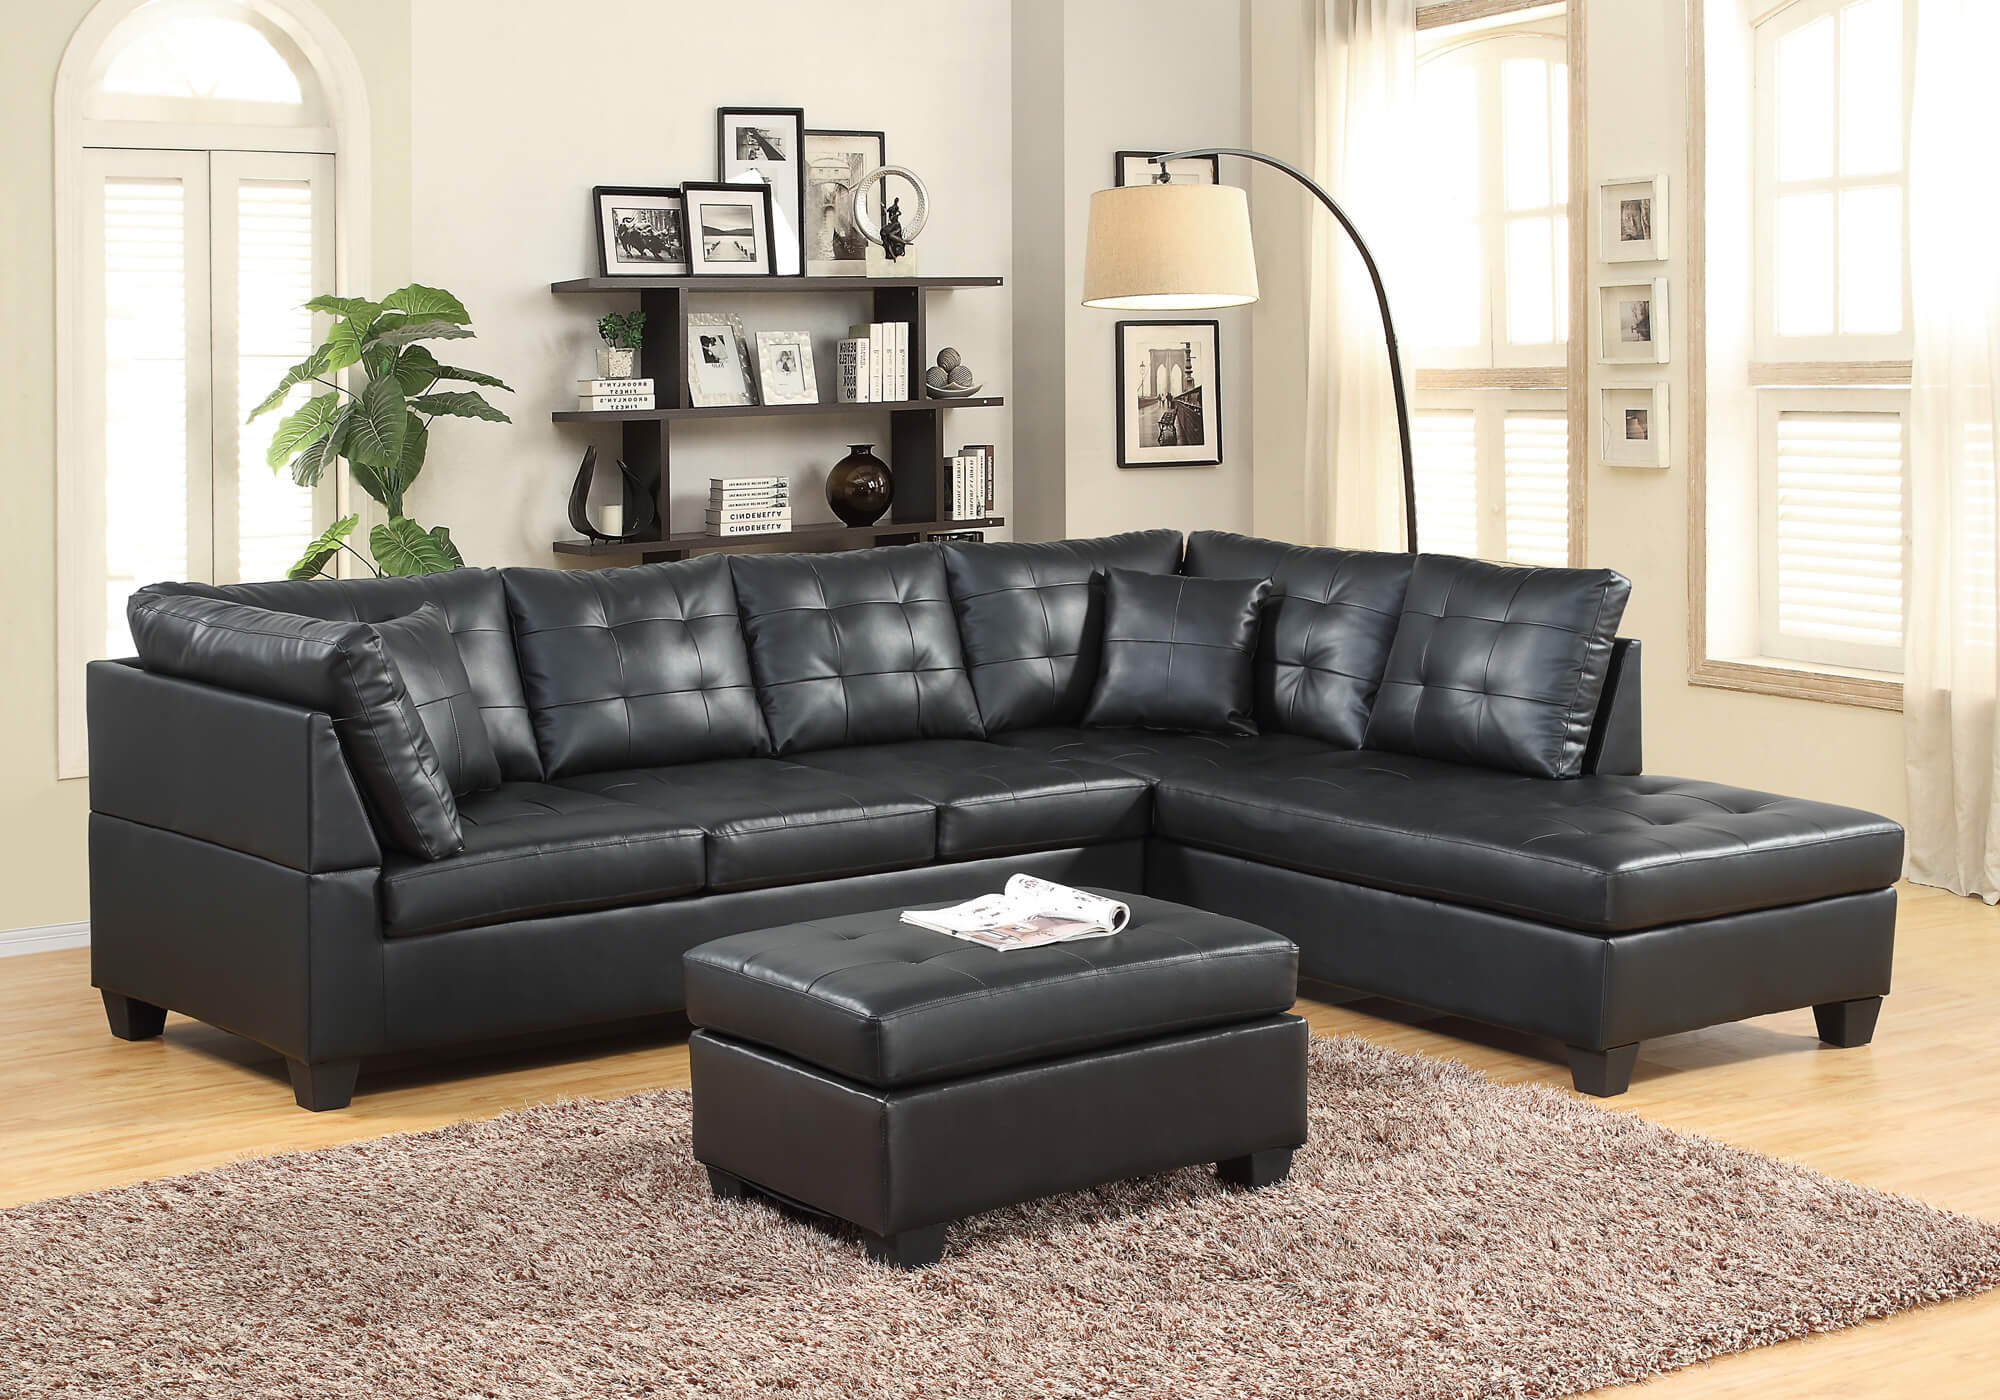 Black leather like sectiona sectional sofa sets for Living room sofa